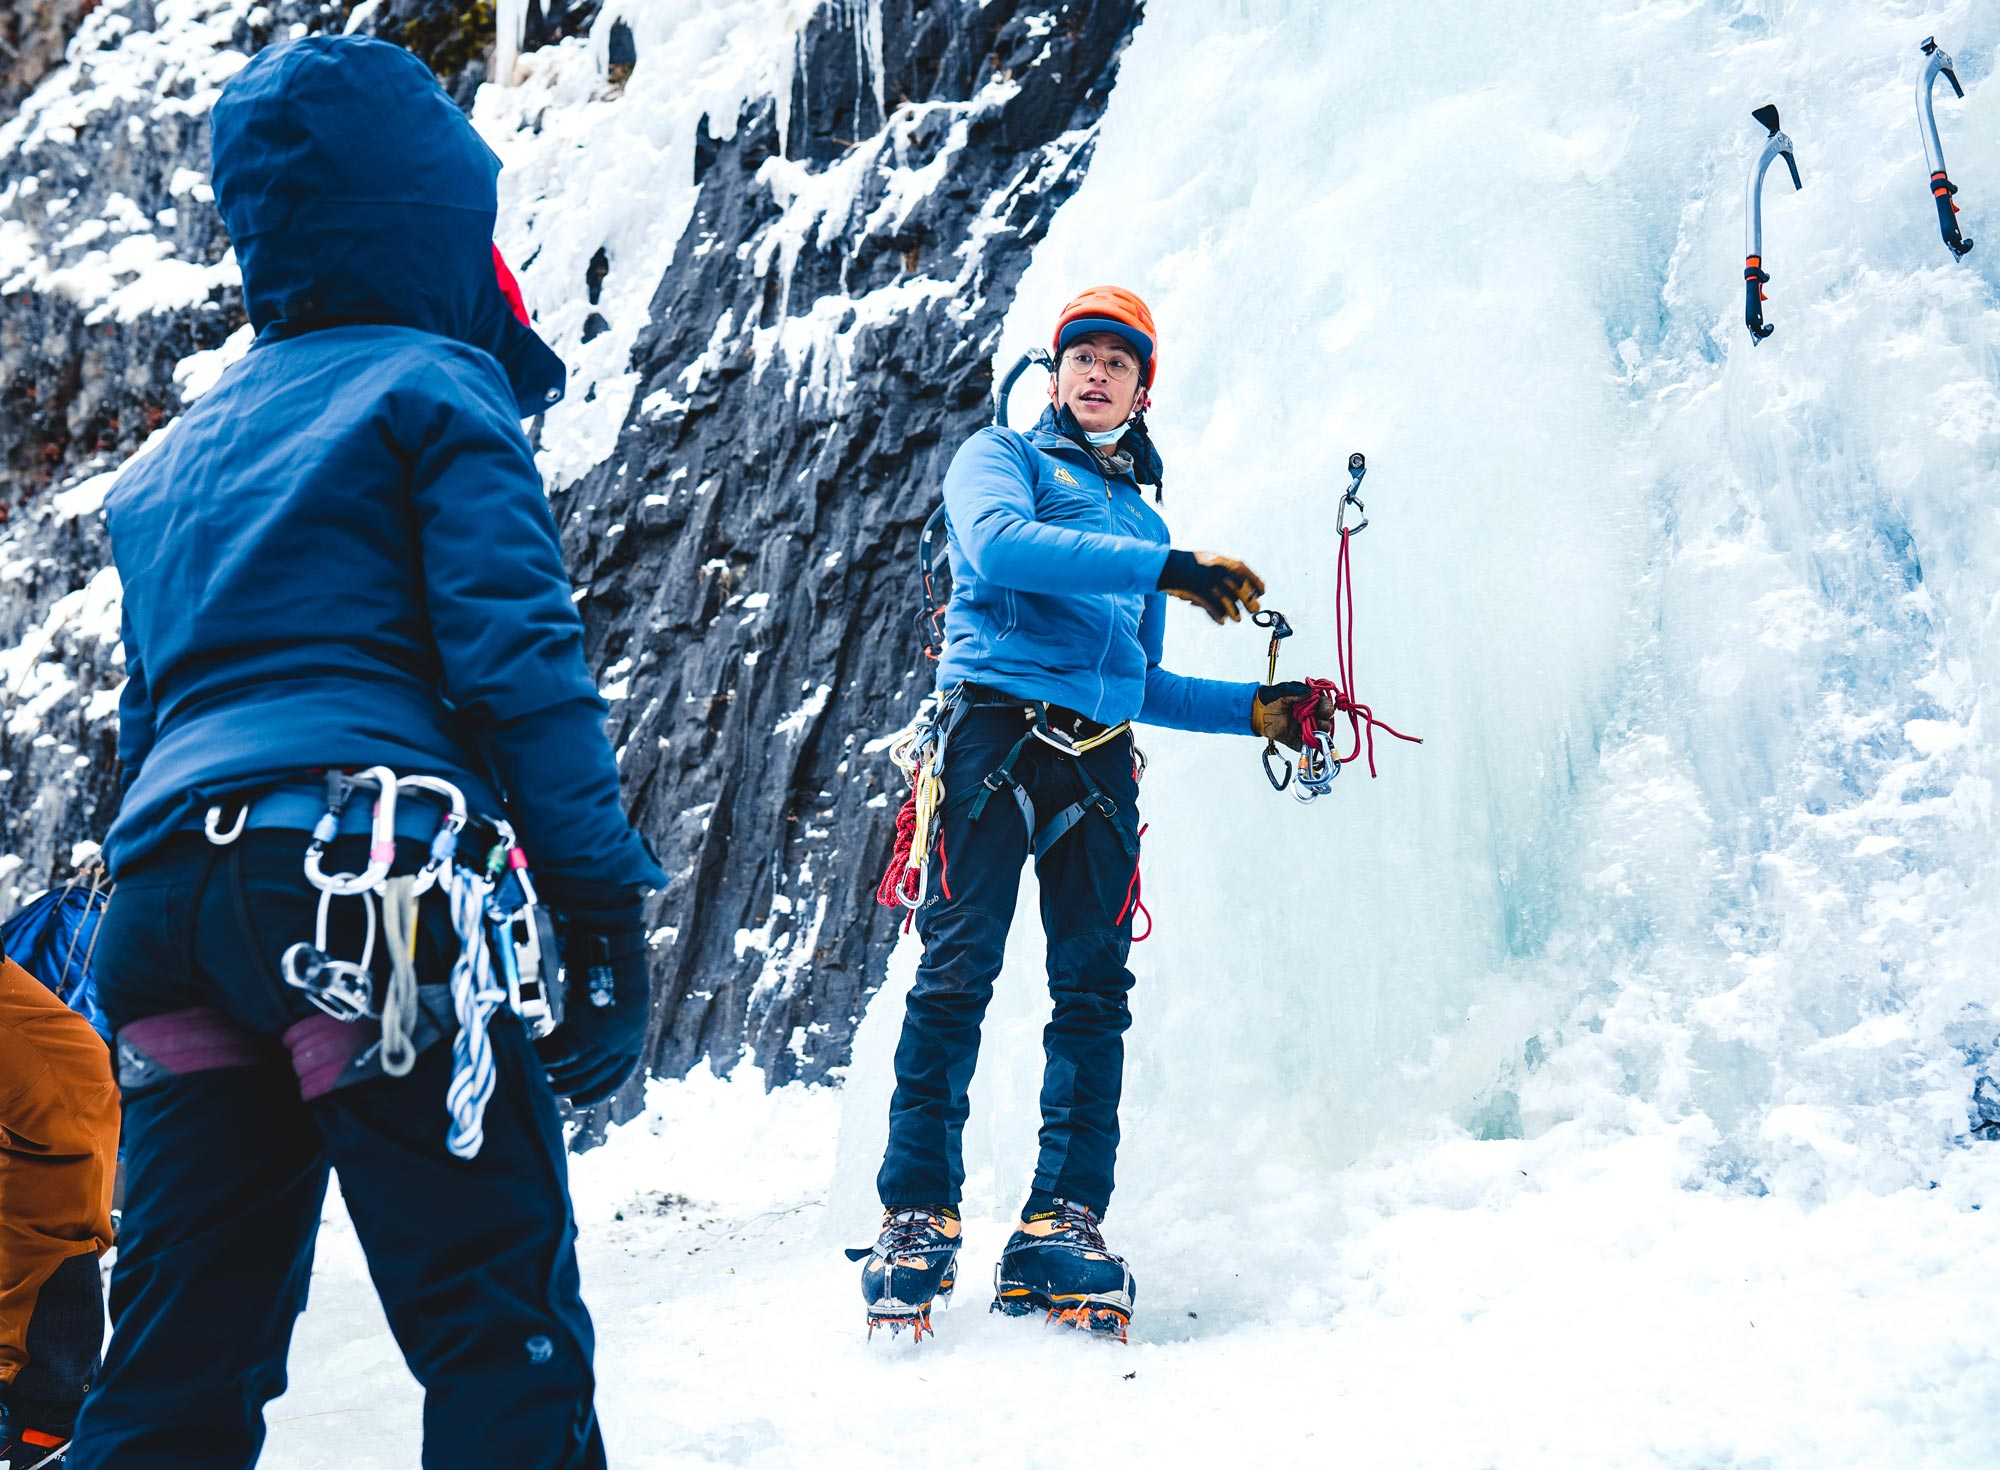 Don Nguyen teaches a BIPOC ice-climbing clinic in Hyalite Canyon, Montana (traditional lands of Apsaalooke, Salish-Kootenai, Northern Cheyenne, Niitsitapi, Confederated Salish and Kootenai and other nations), with Karen de Vera in the foreground.